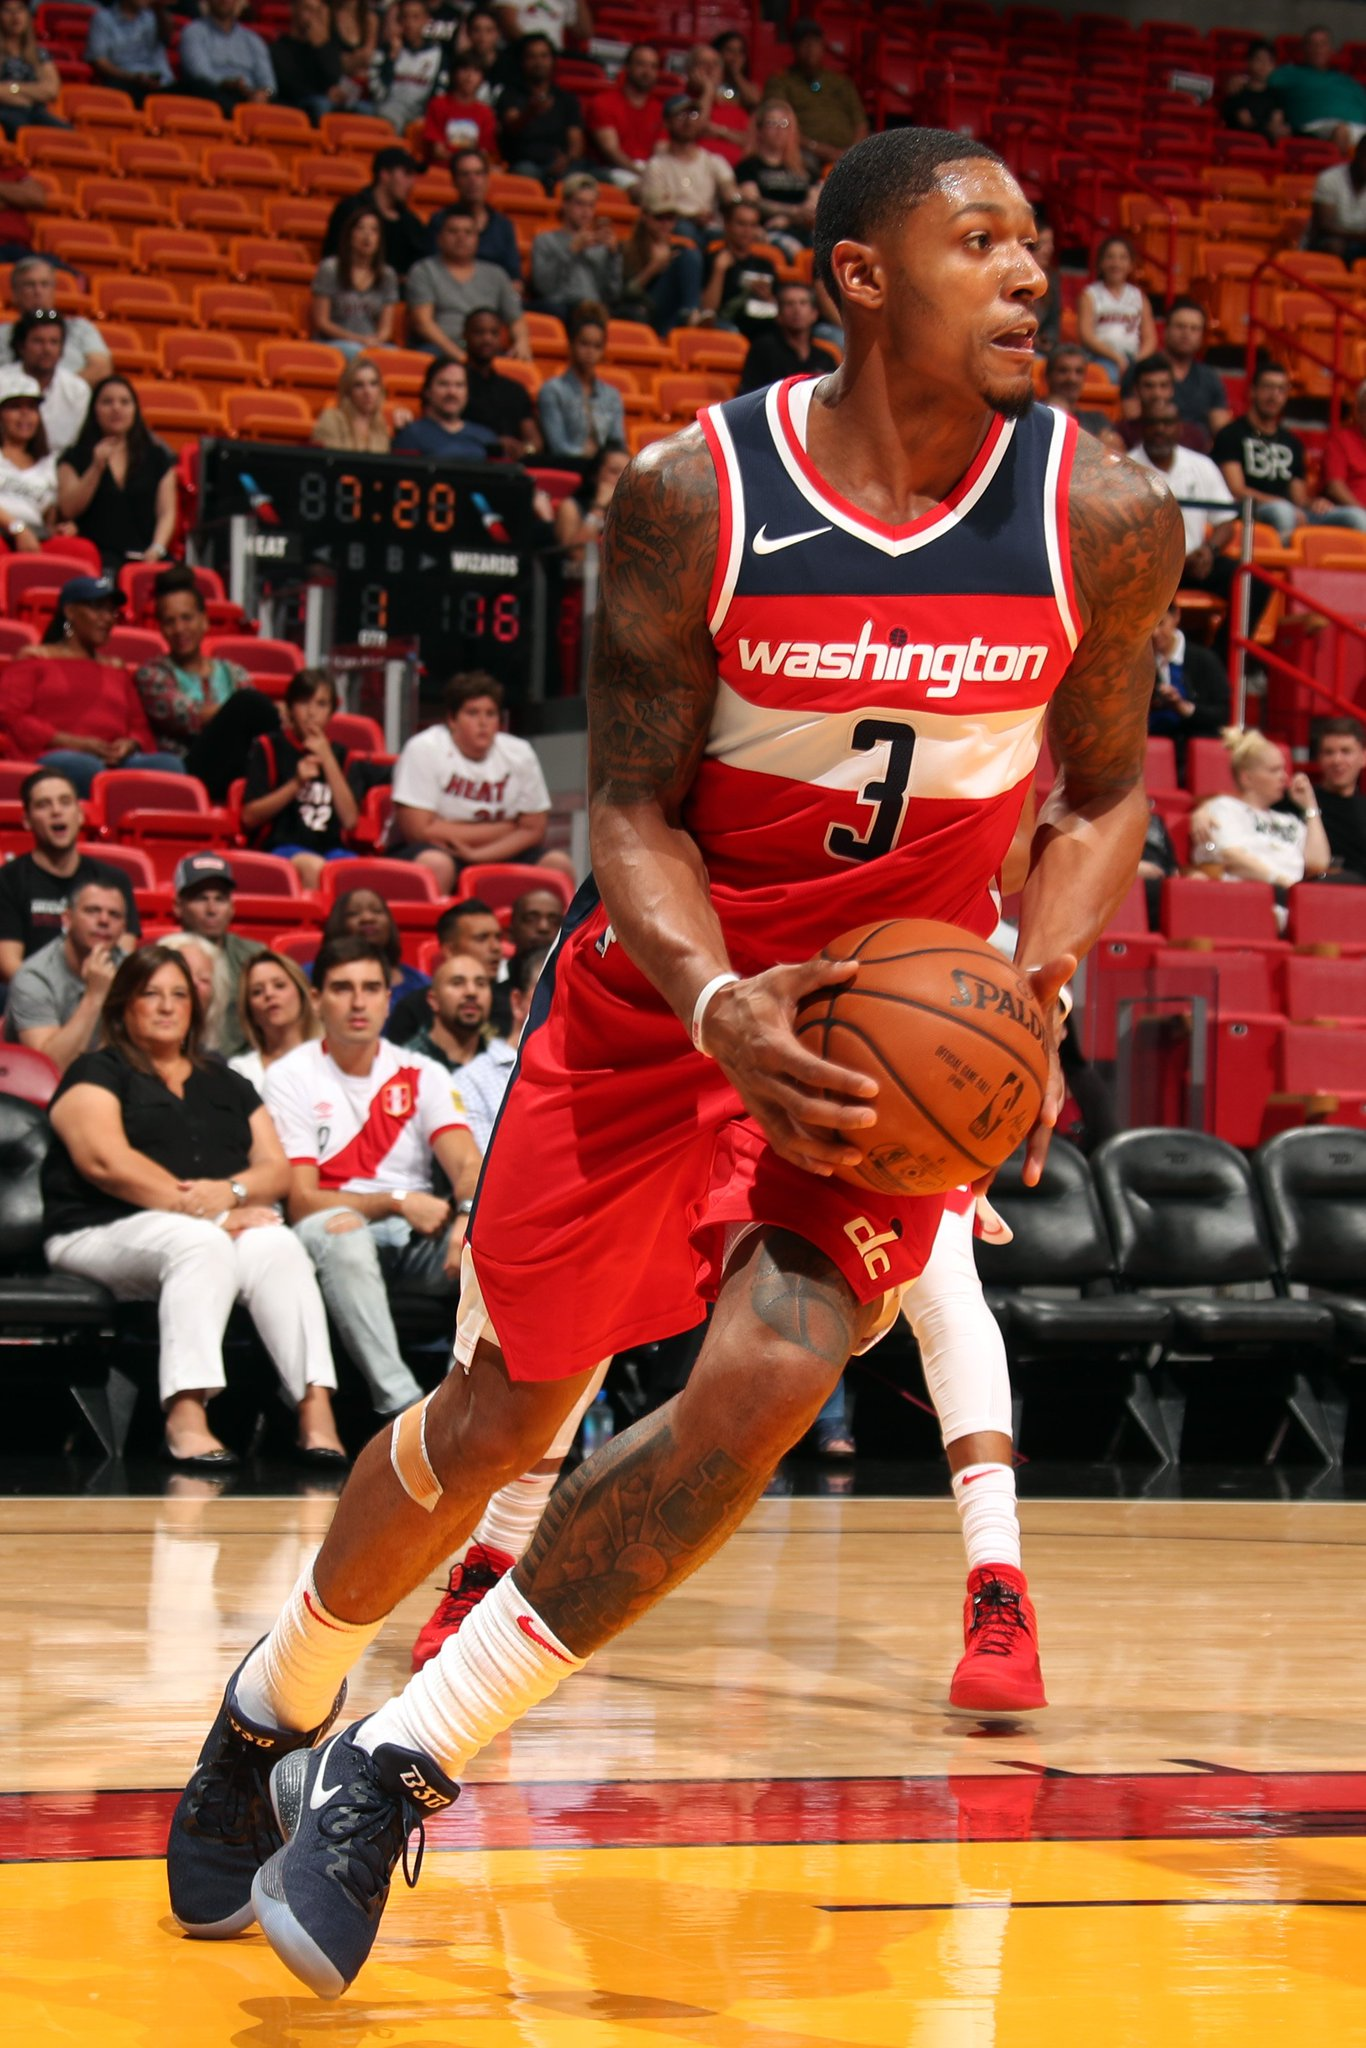 Halftime in Miami:  @WashWizards 53 - @MiamiHEAT 50  Beal: 9 PTS,3 ASTS https://t.co/6vFQ9vY6G4